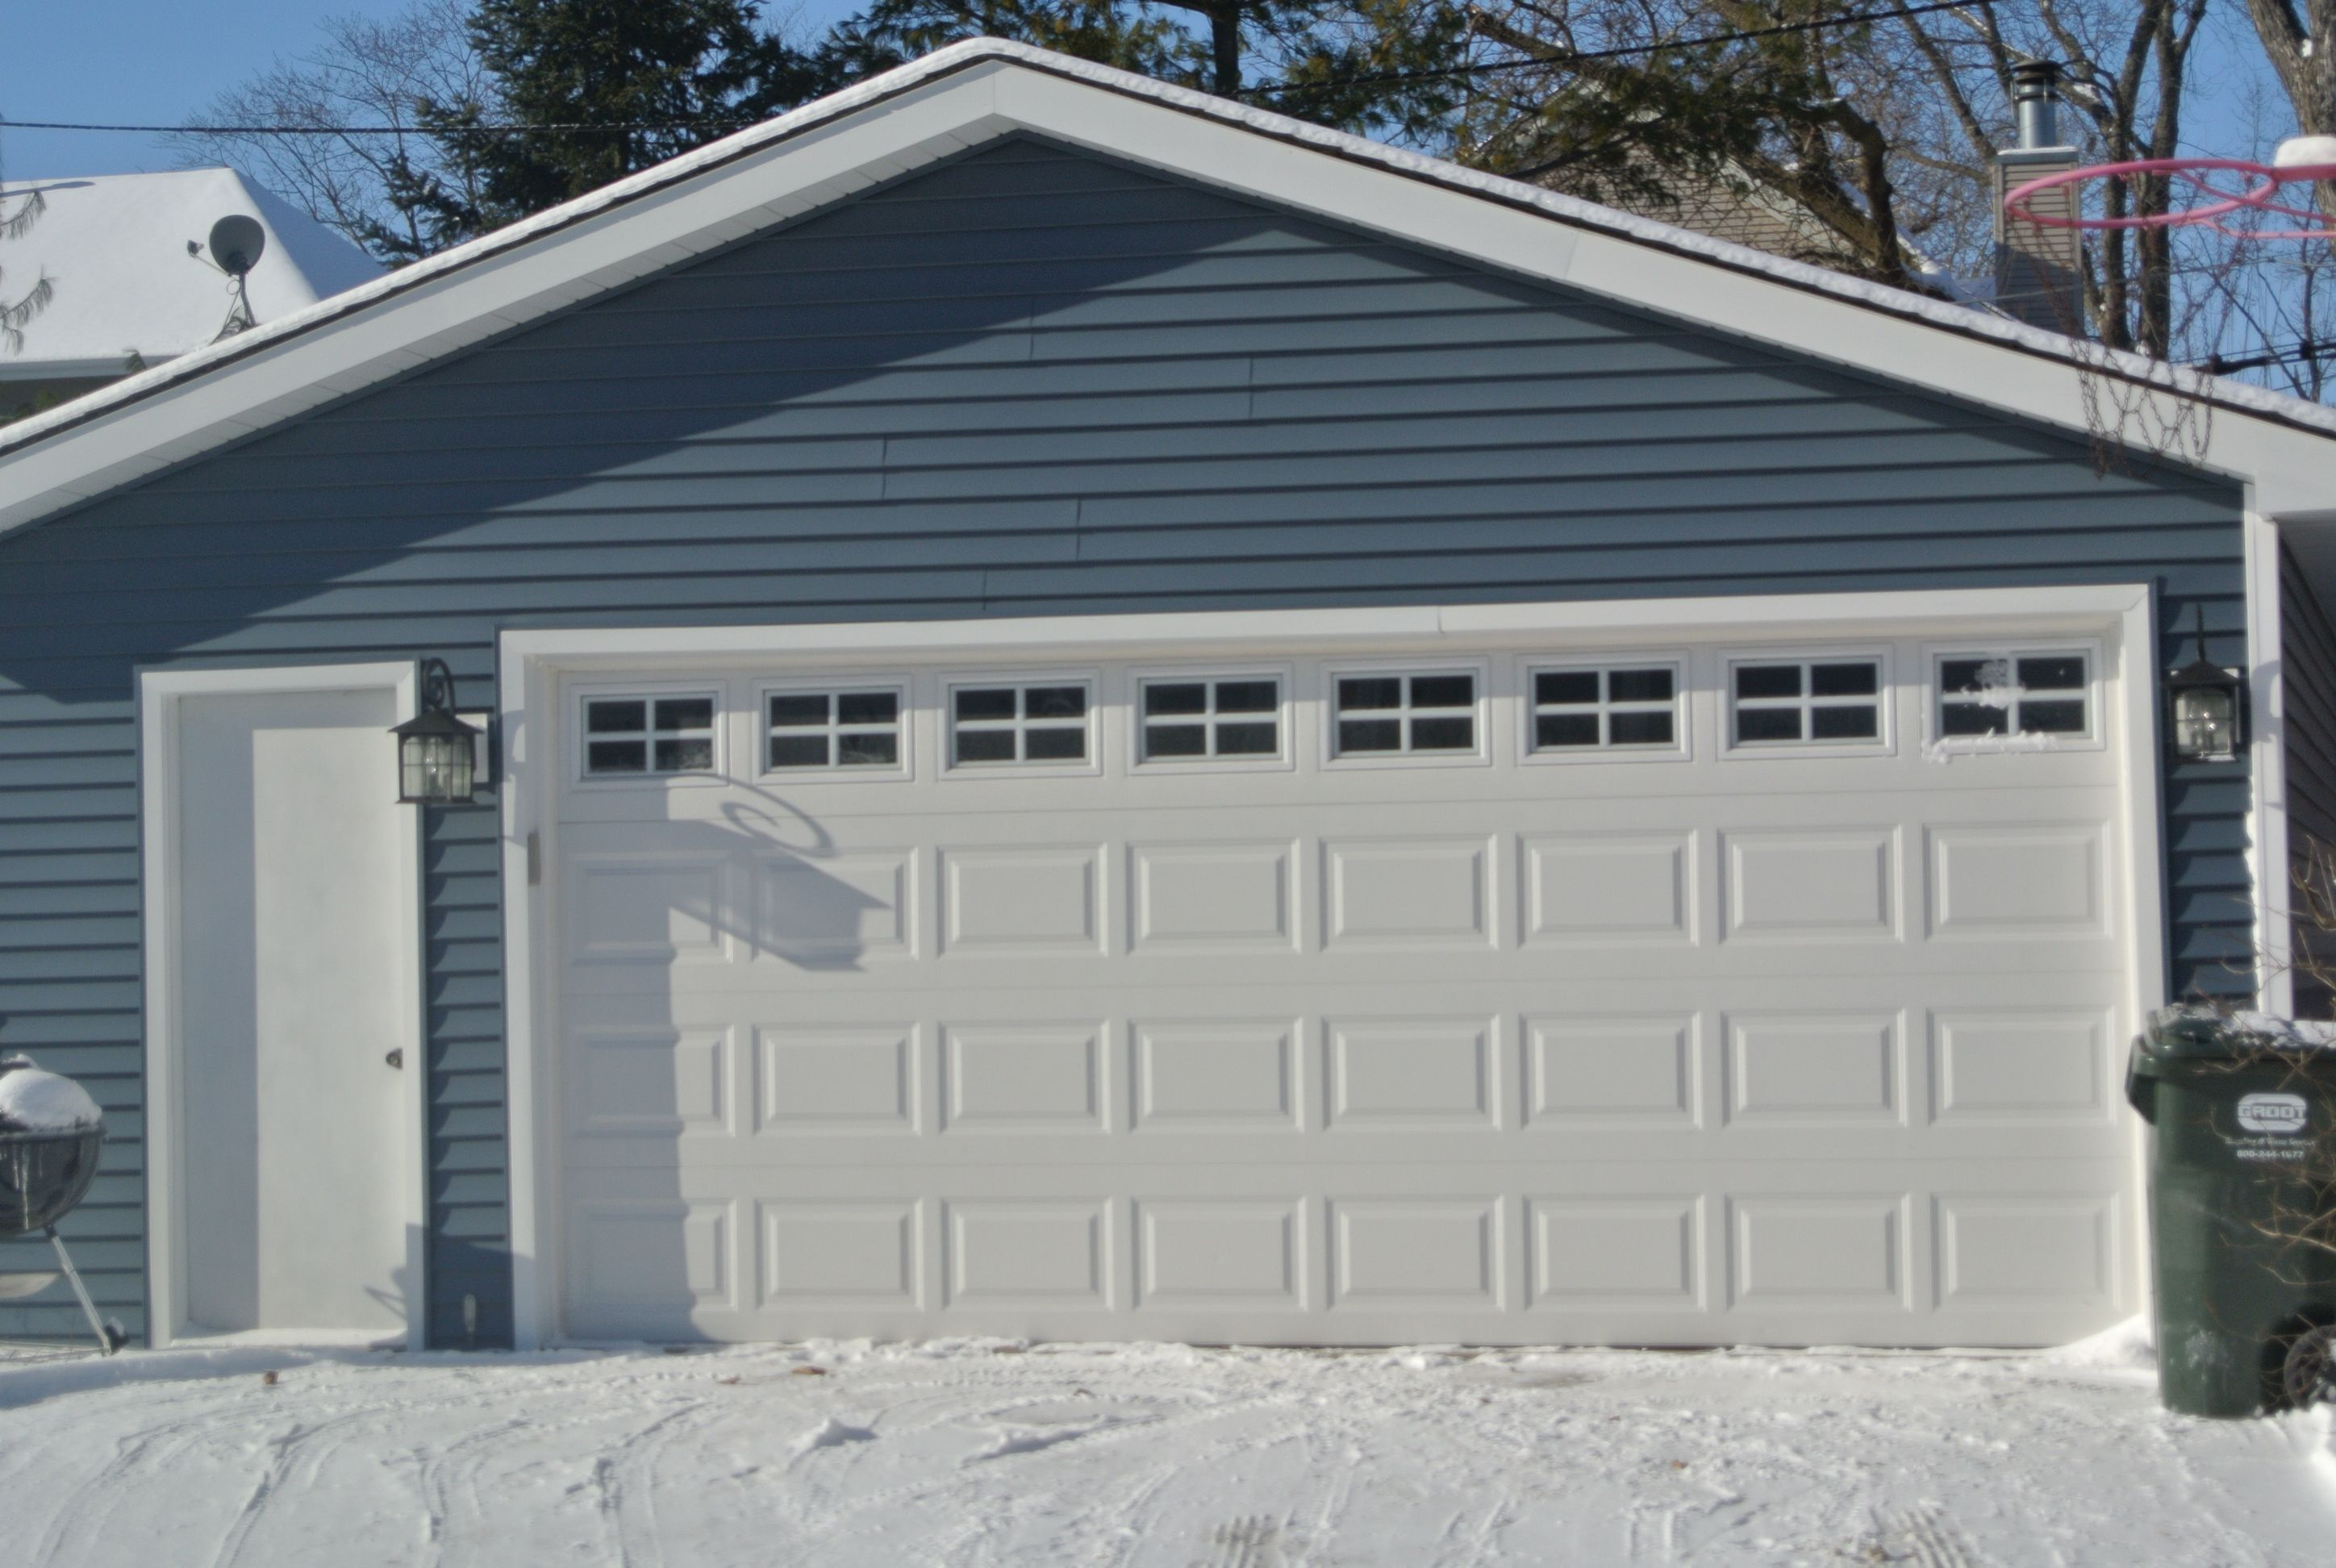 Pacific Blue Vinyl Siding By Certainteed I Like The Contract With The White Garage Trim Blue Siding House Exterior Blue Vinyl Siding